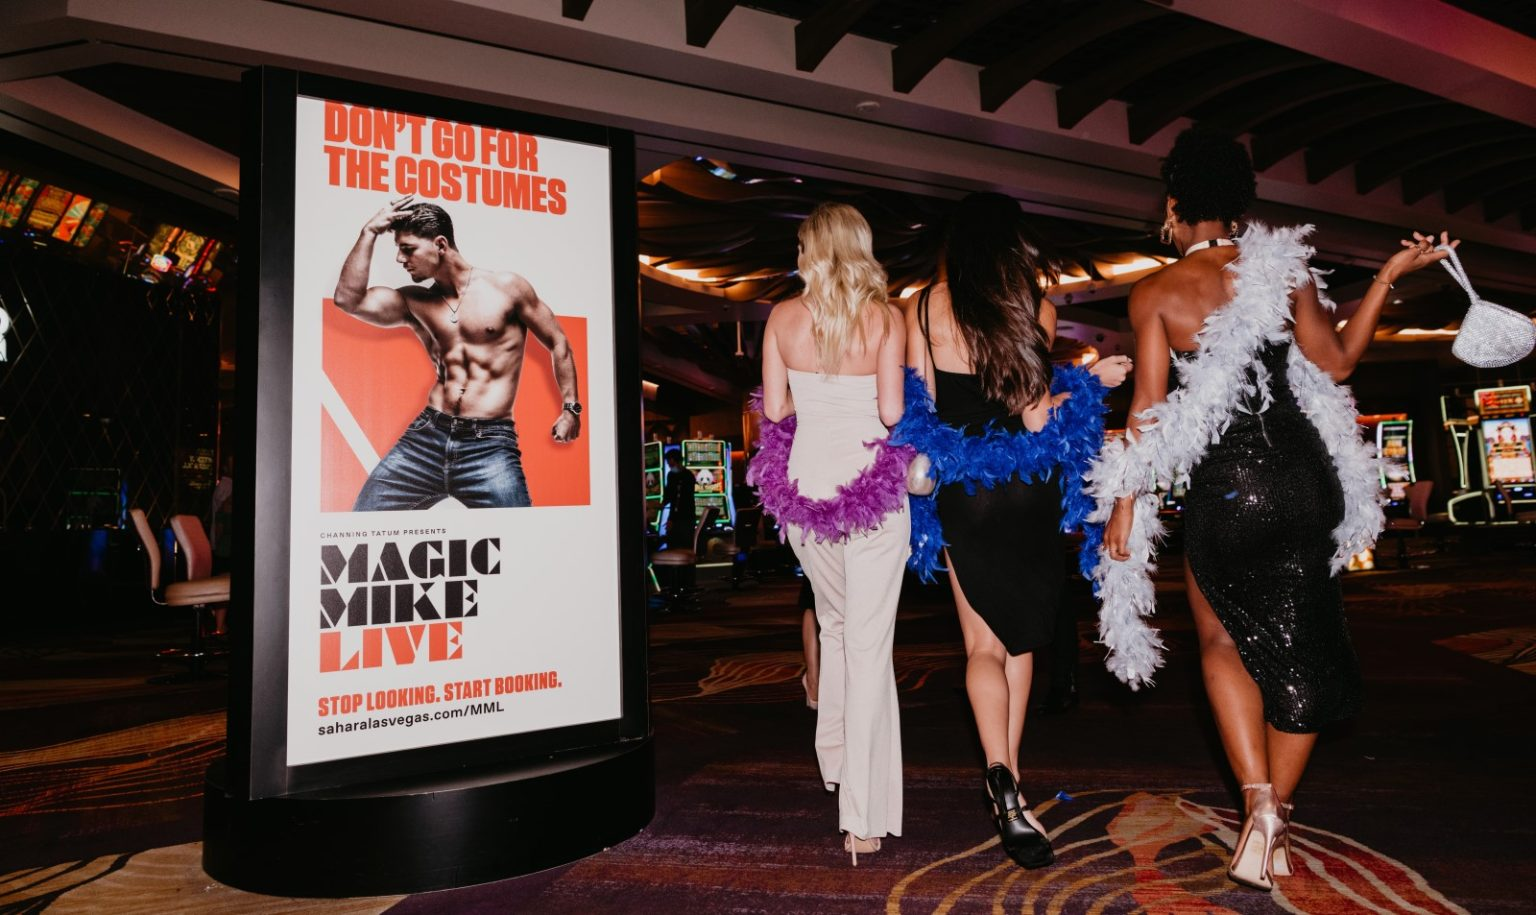 Three ladies with leis walking across the casino looking at Magic Mike Live sign